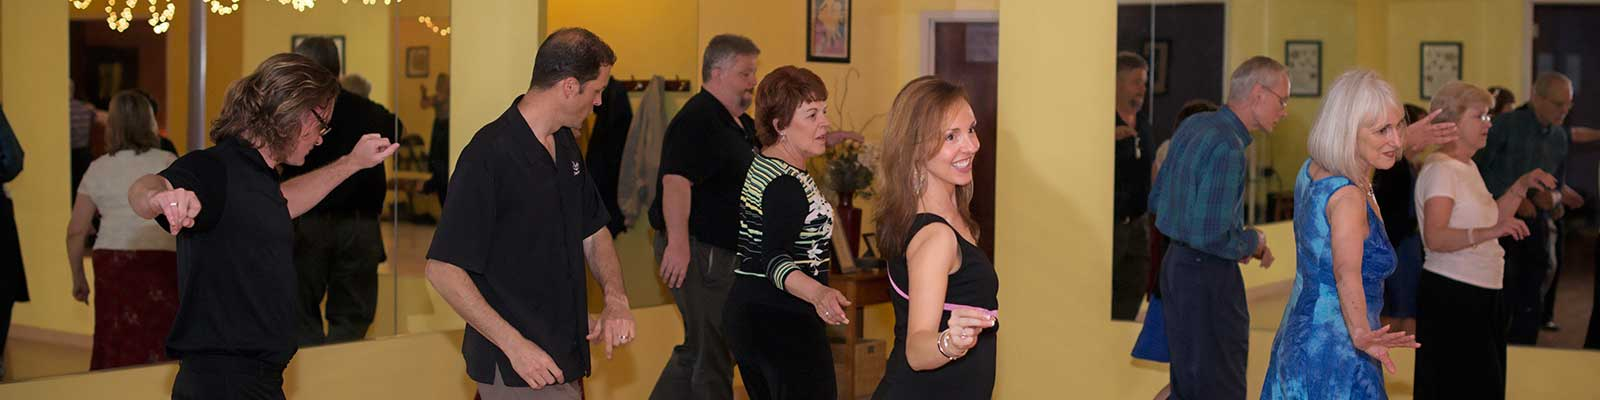 Rigby's Jig offers Dance Packages for students, private lessons, groups and parties, and private group lessons. Find exactly what you need in Richmond, VA